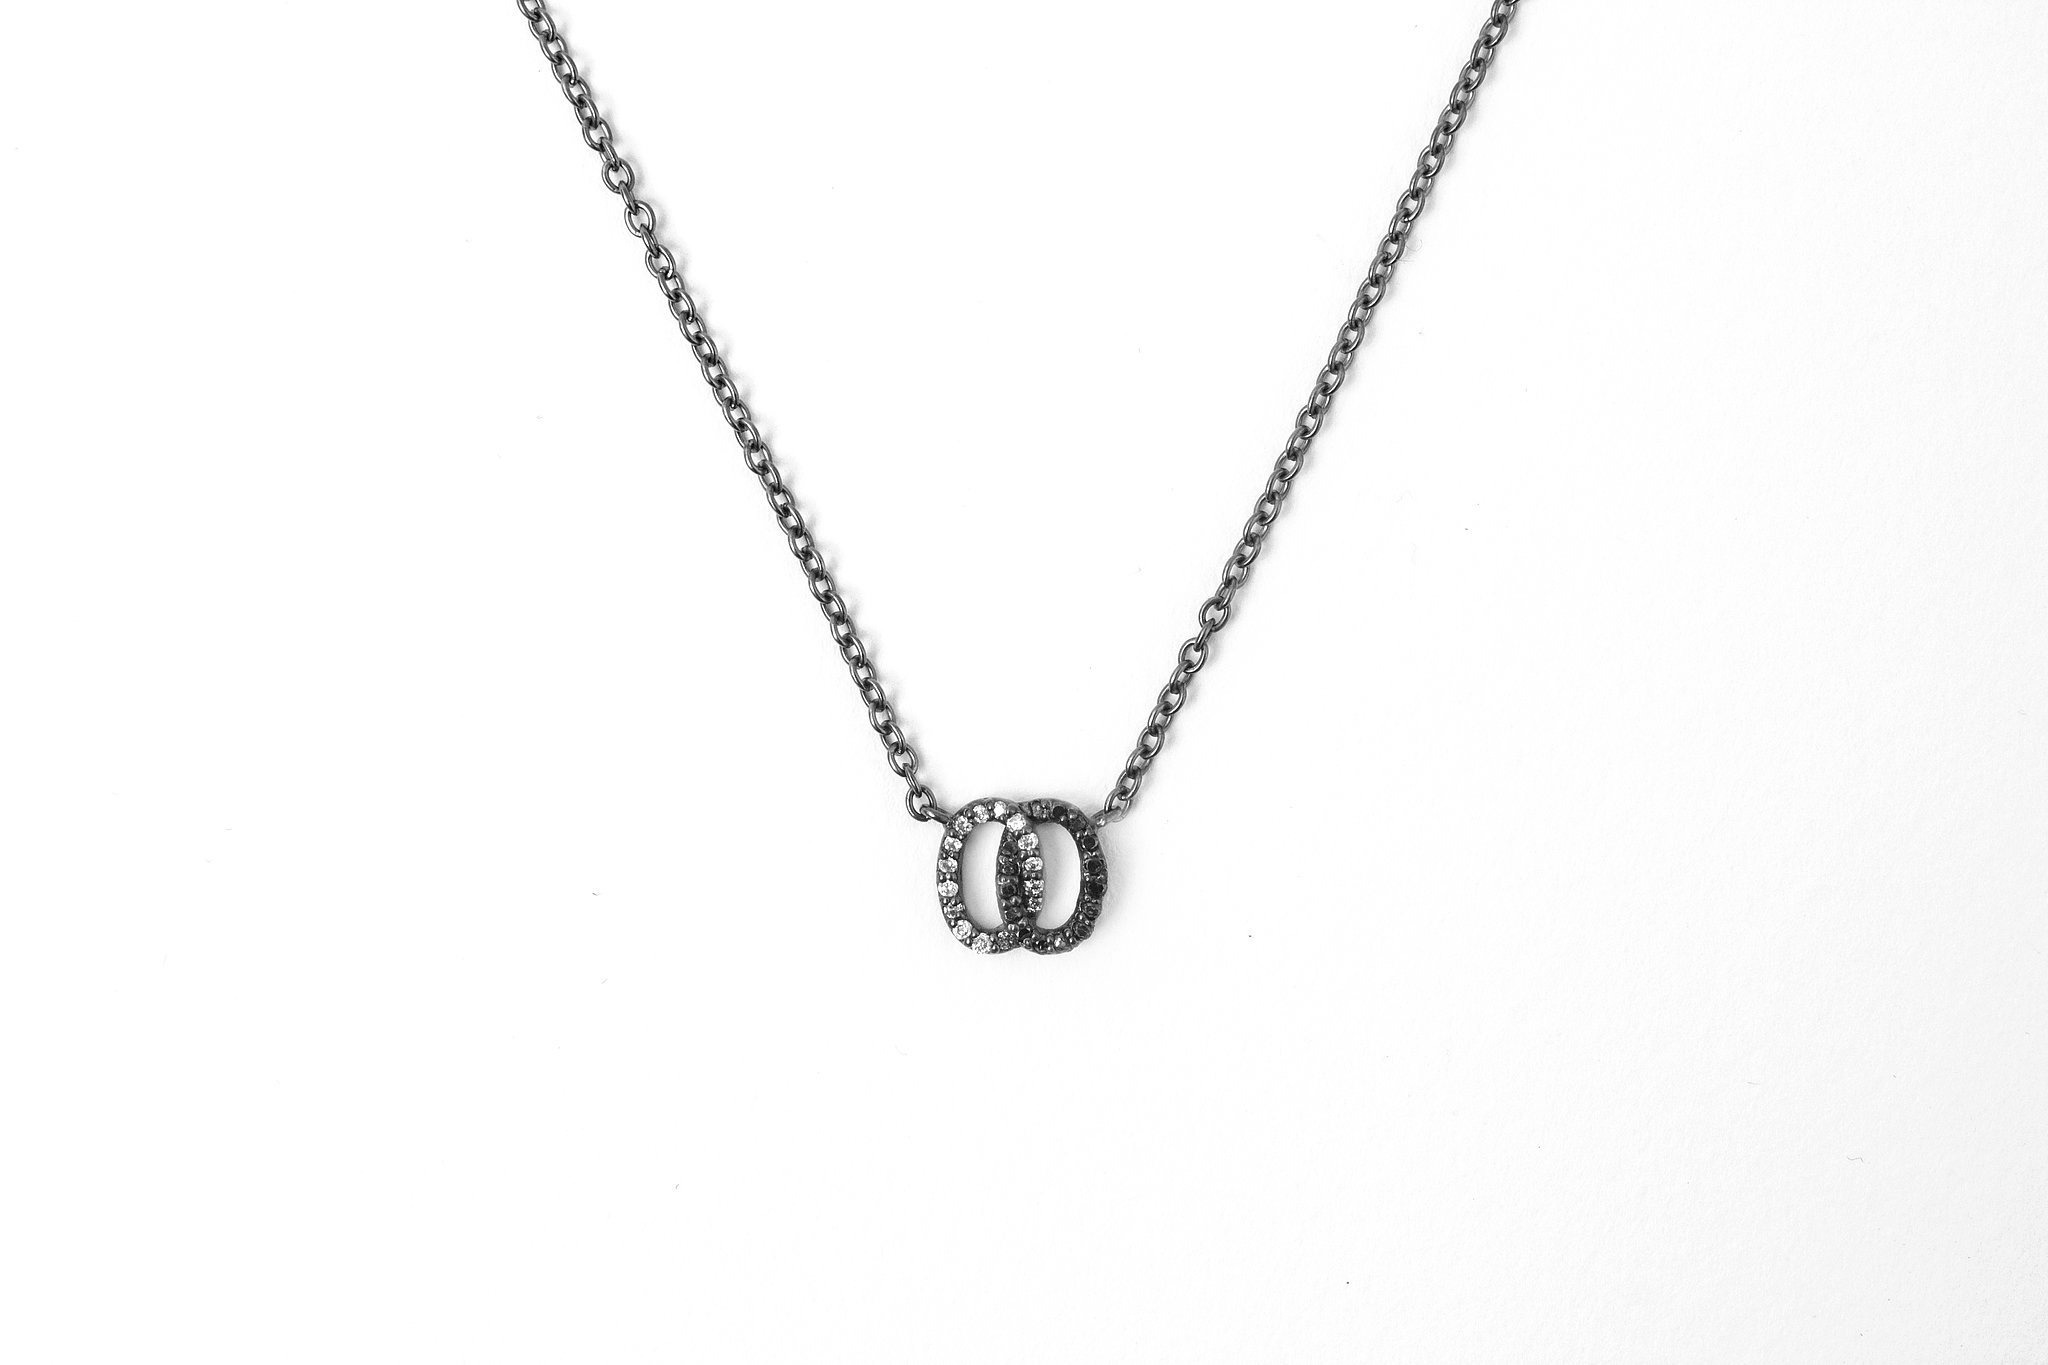 Serenade Necklace